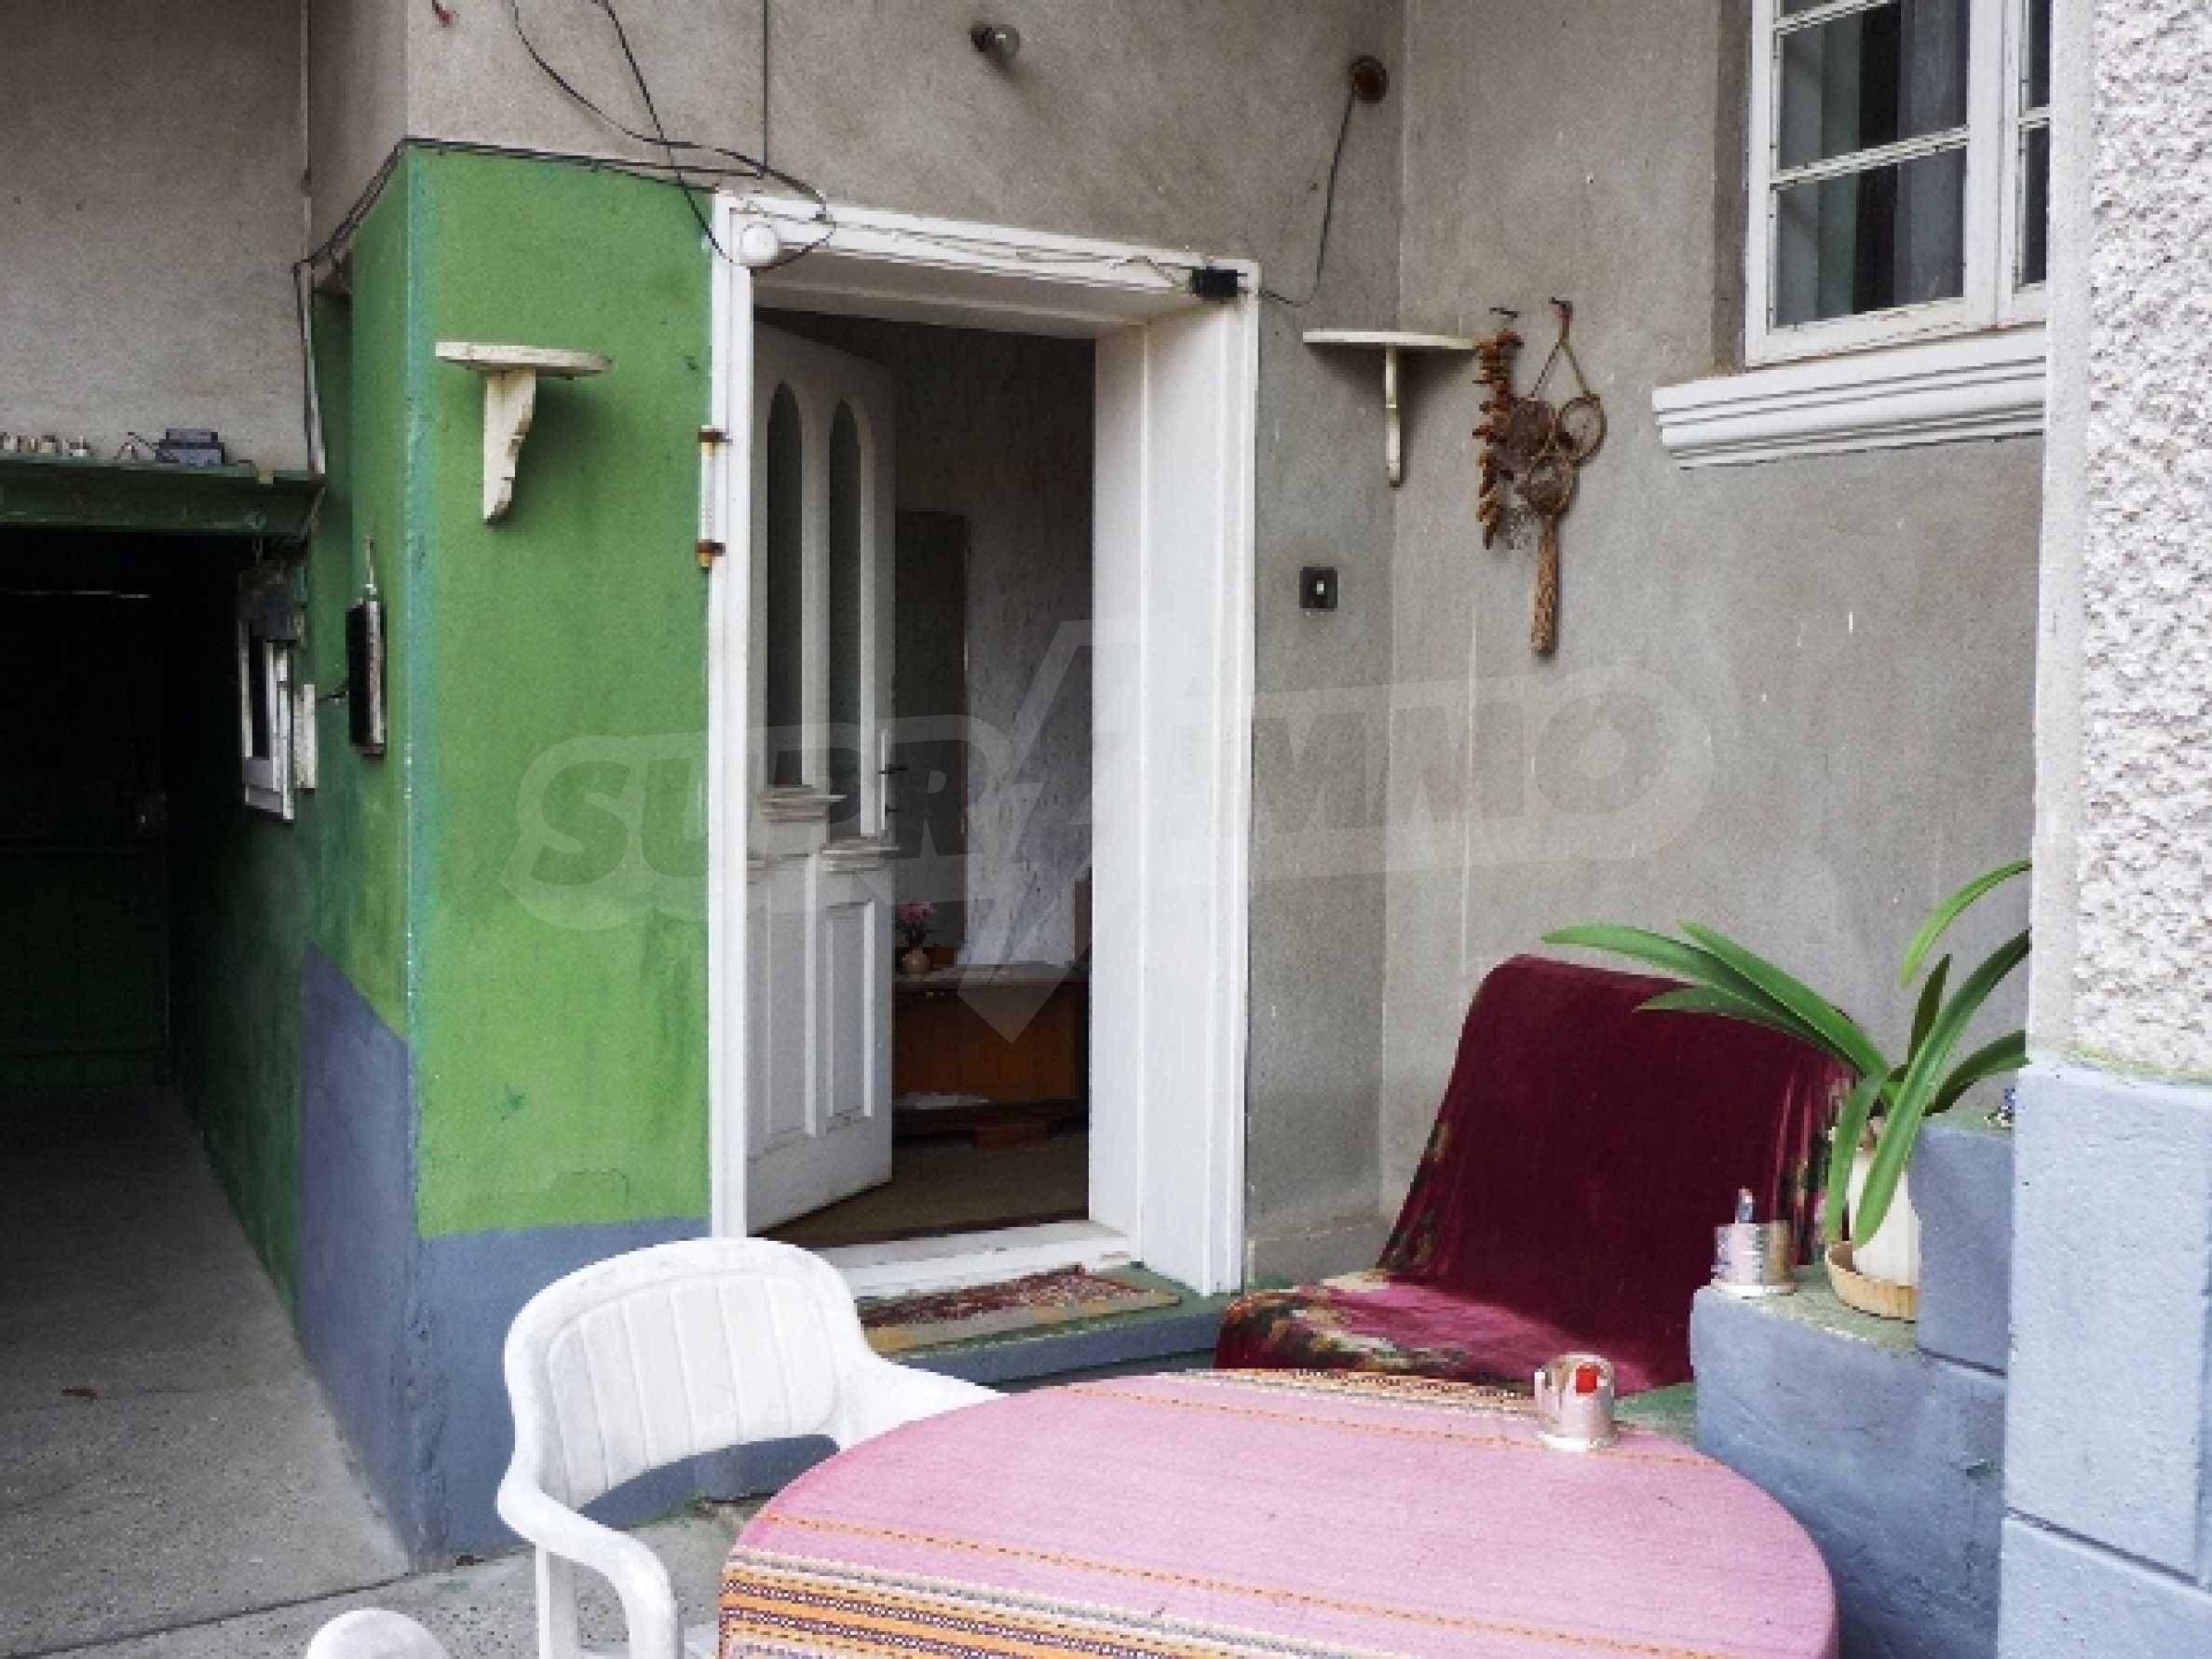 One-storey 5-bedroom house in Ostritsa village, Ruse district 11